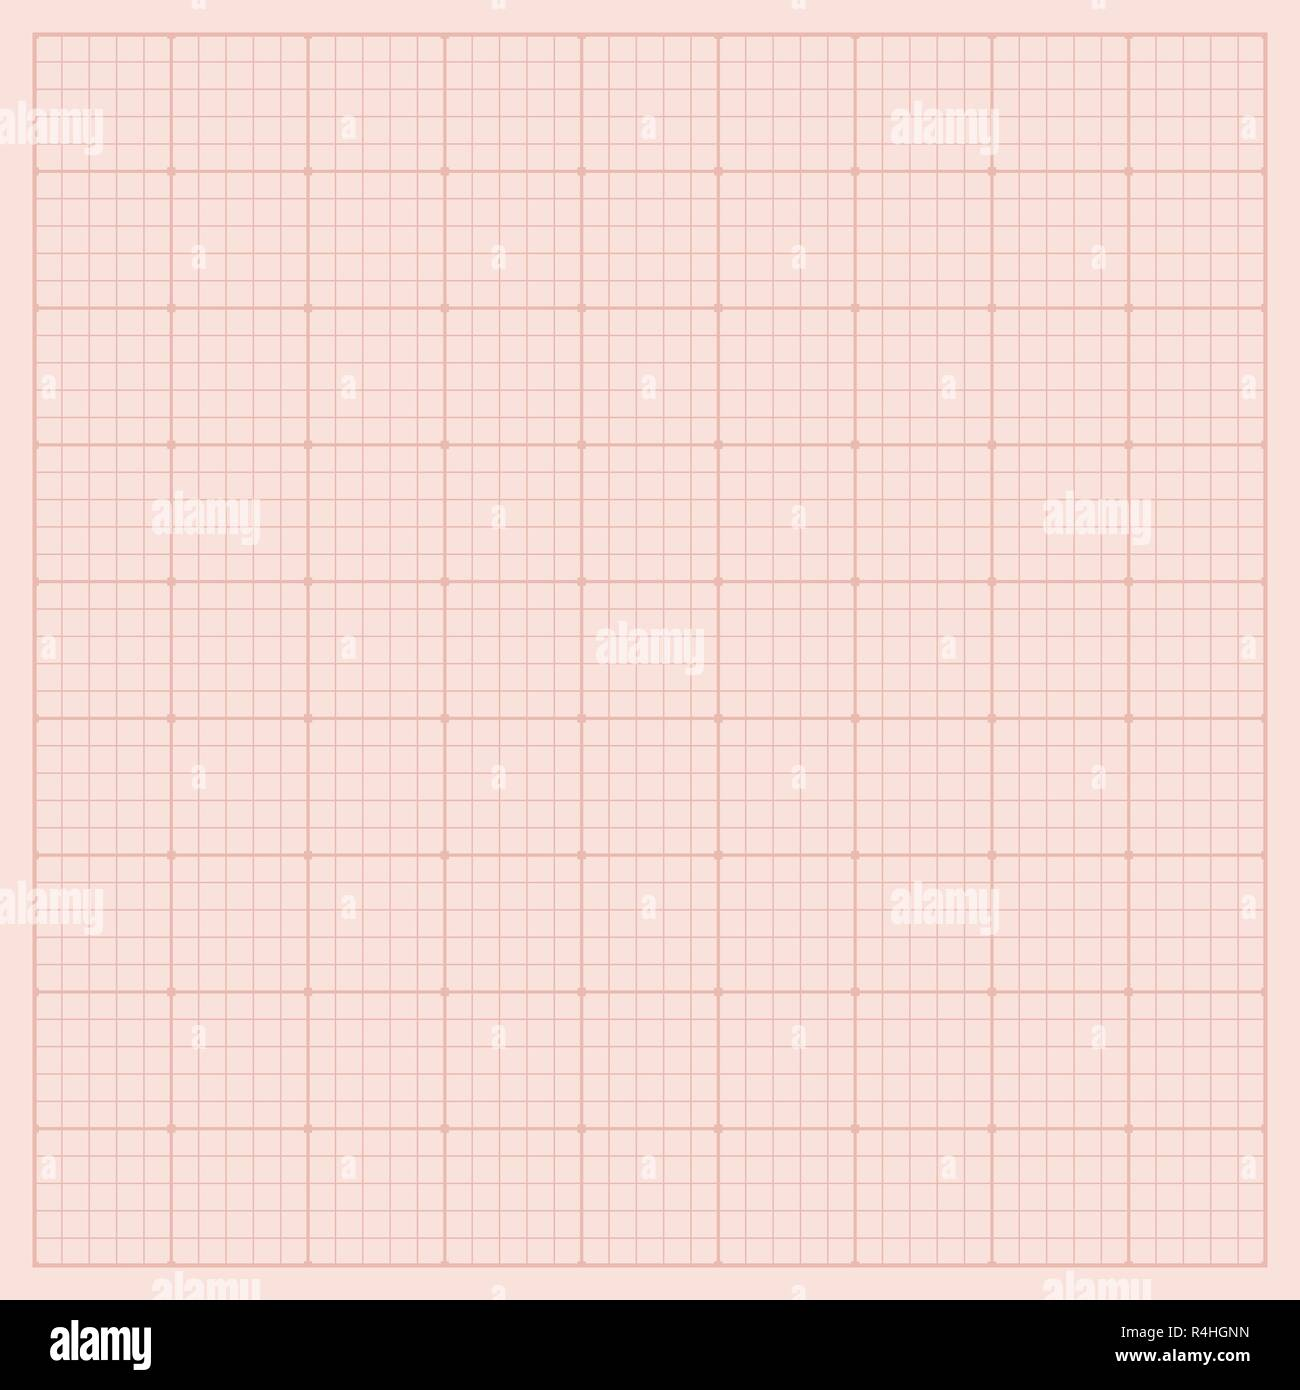 grid paper vector stock photos grid paper vector stock images alamy